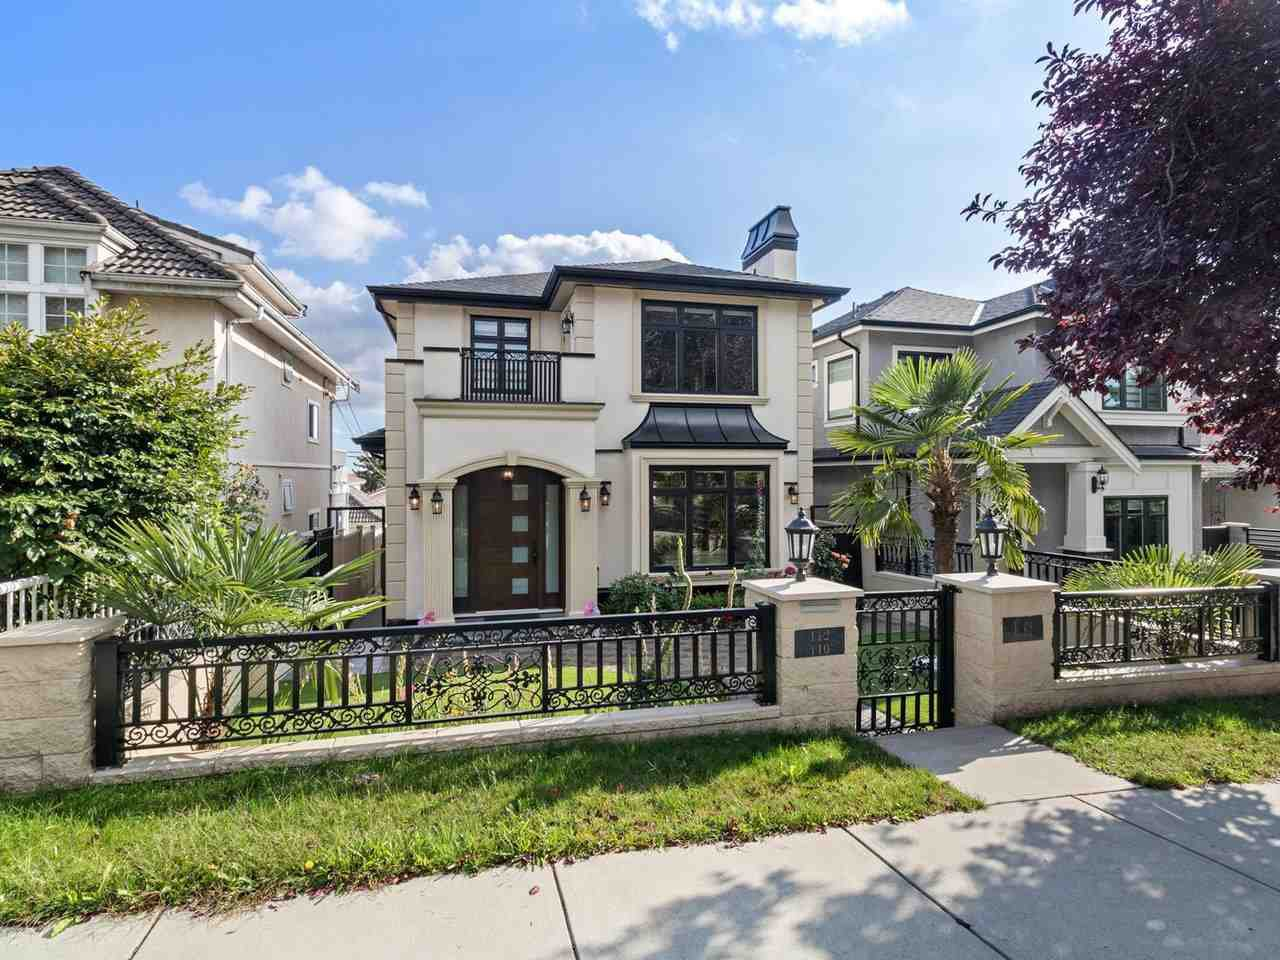 Main Photo: 112 E 62ND Avenue in Vancouver: South Vancouver House for sale (Vancouver East)  : MLS®# R2515622